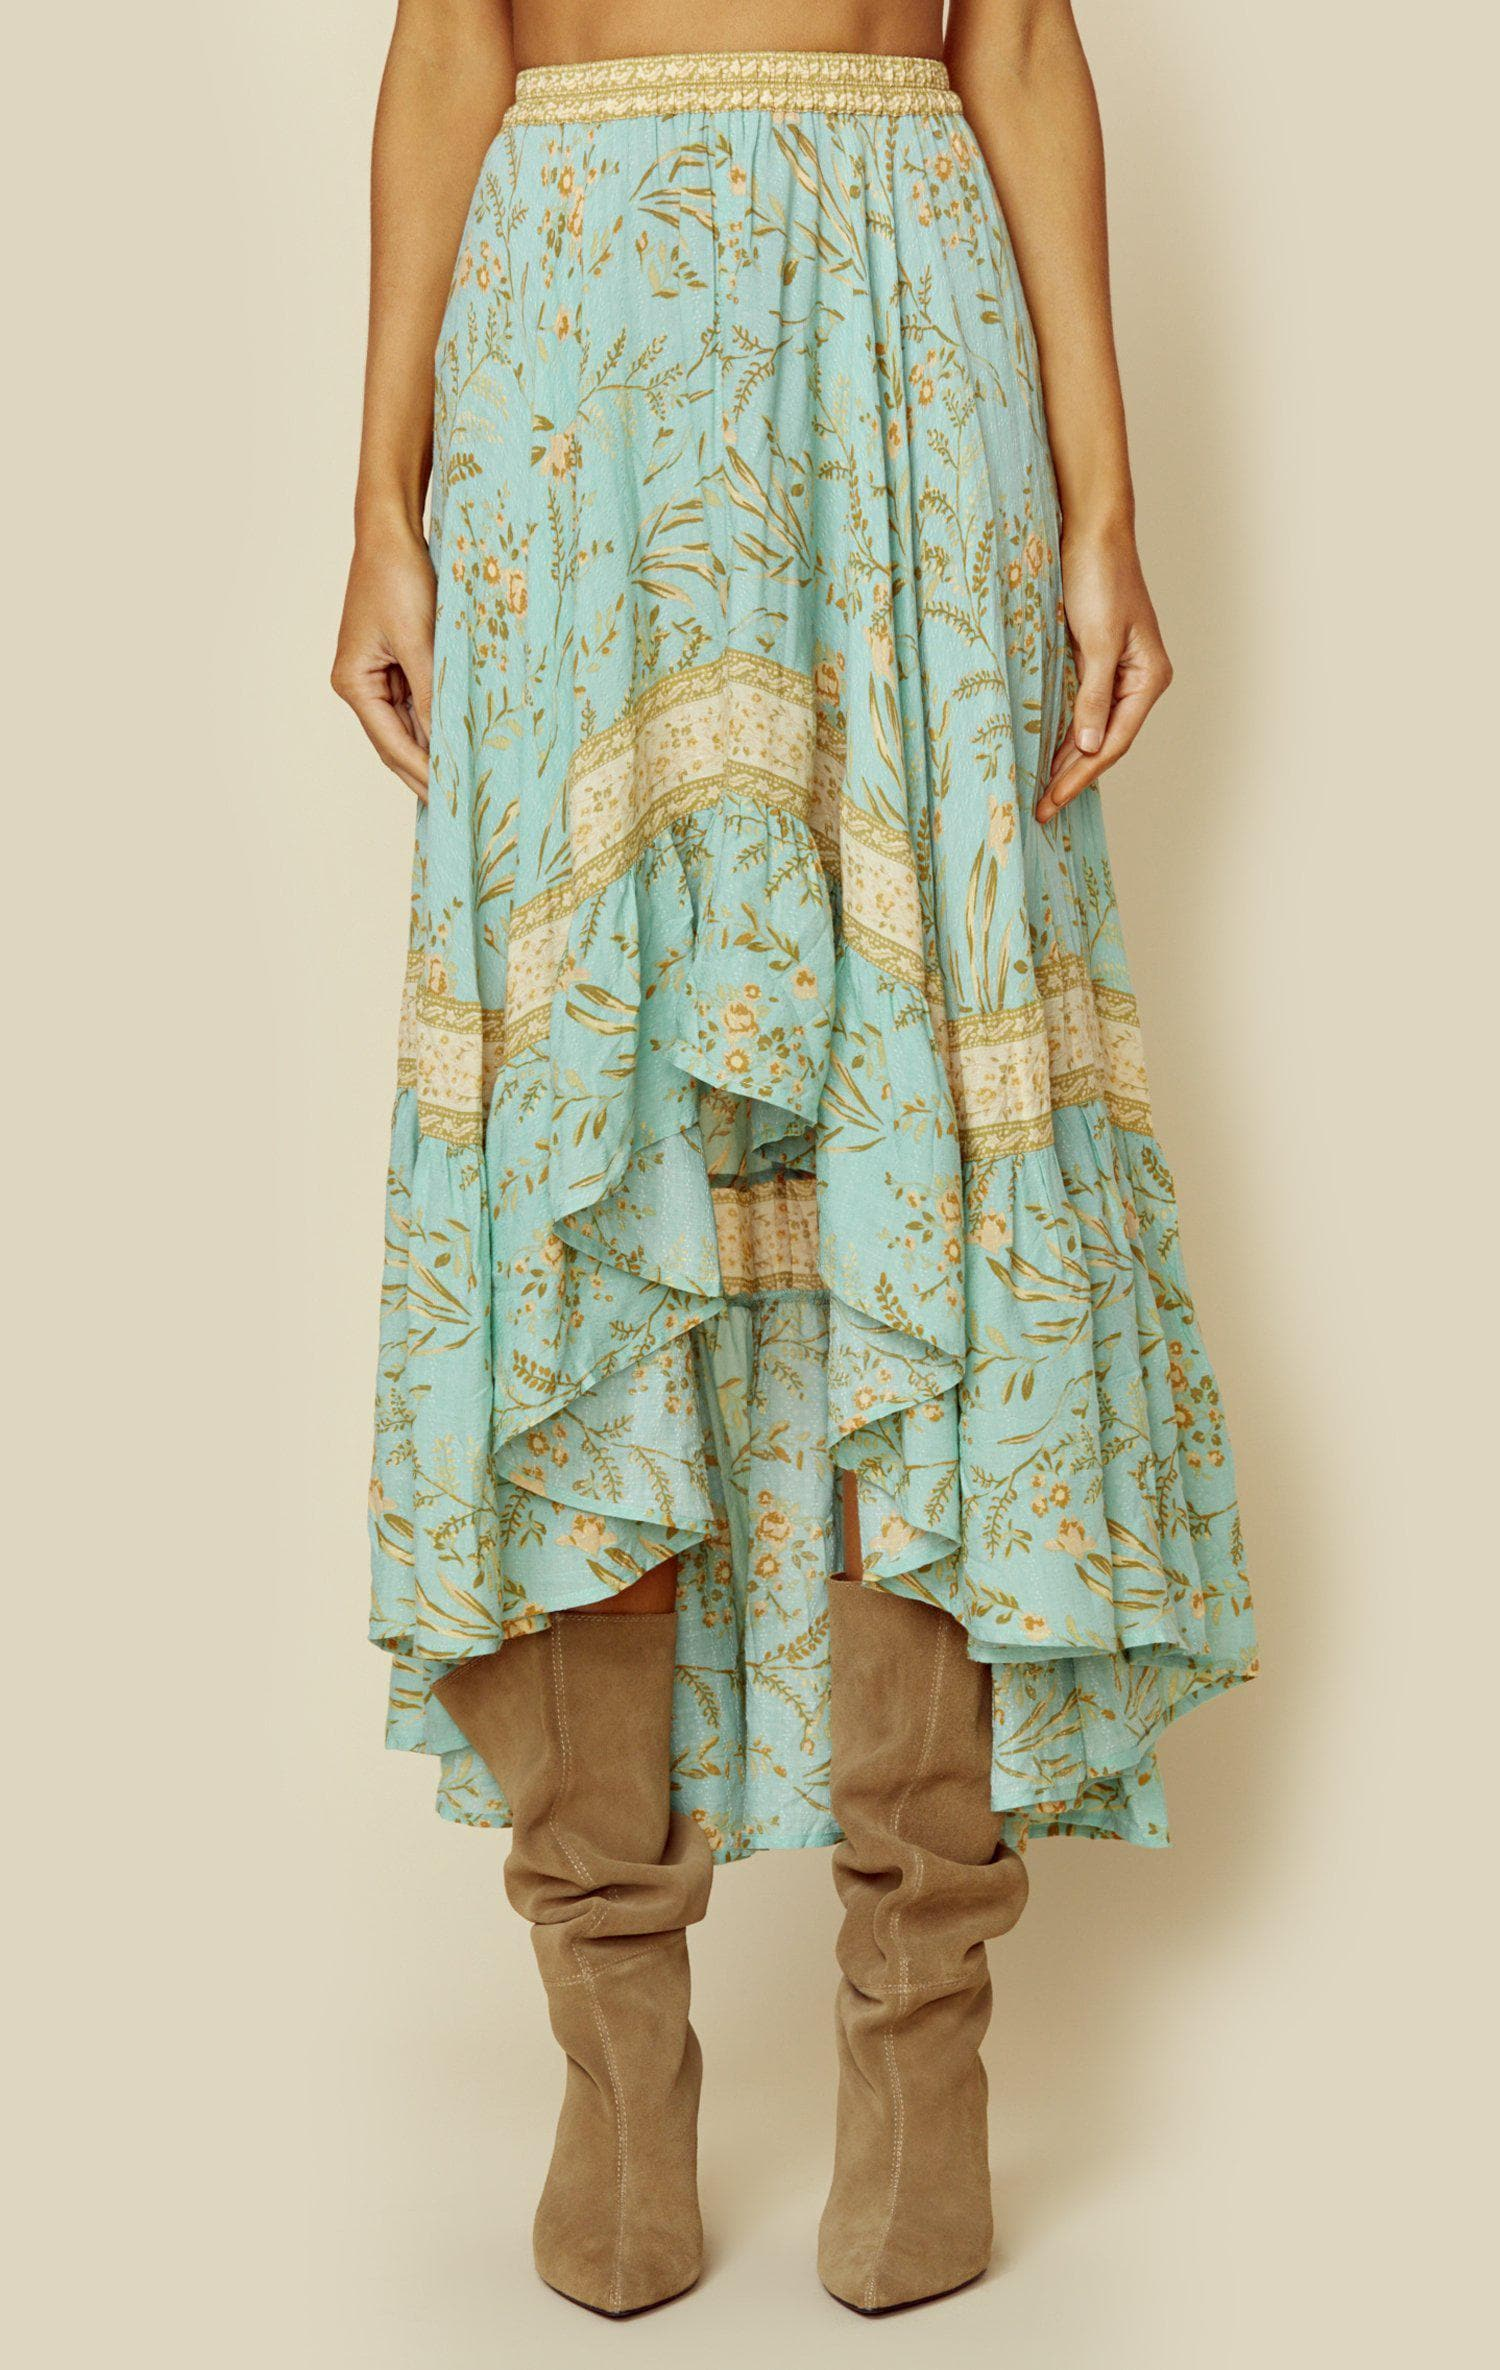 SPELL & THE GYPSY COLLECTIVE MAISIE SKIRT - VINTAGE TURQUOISE